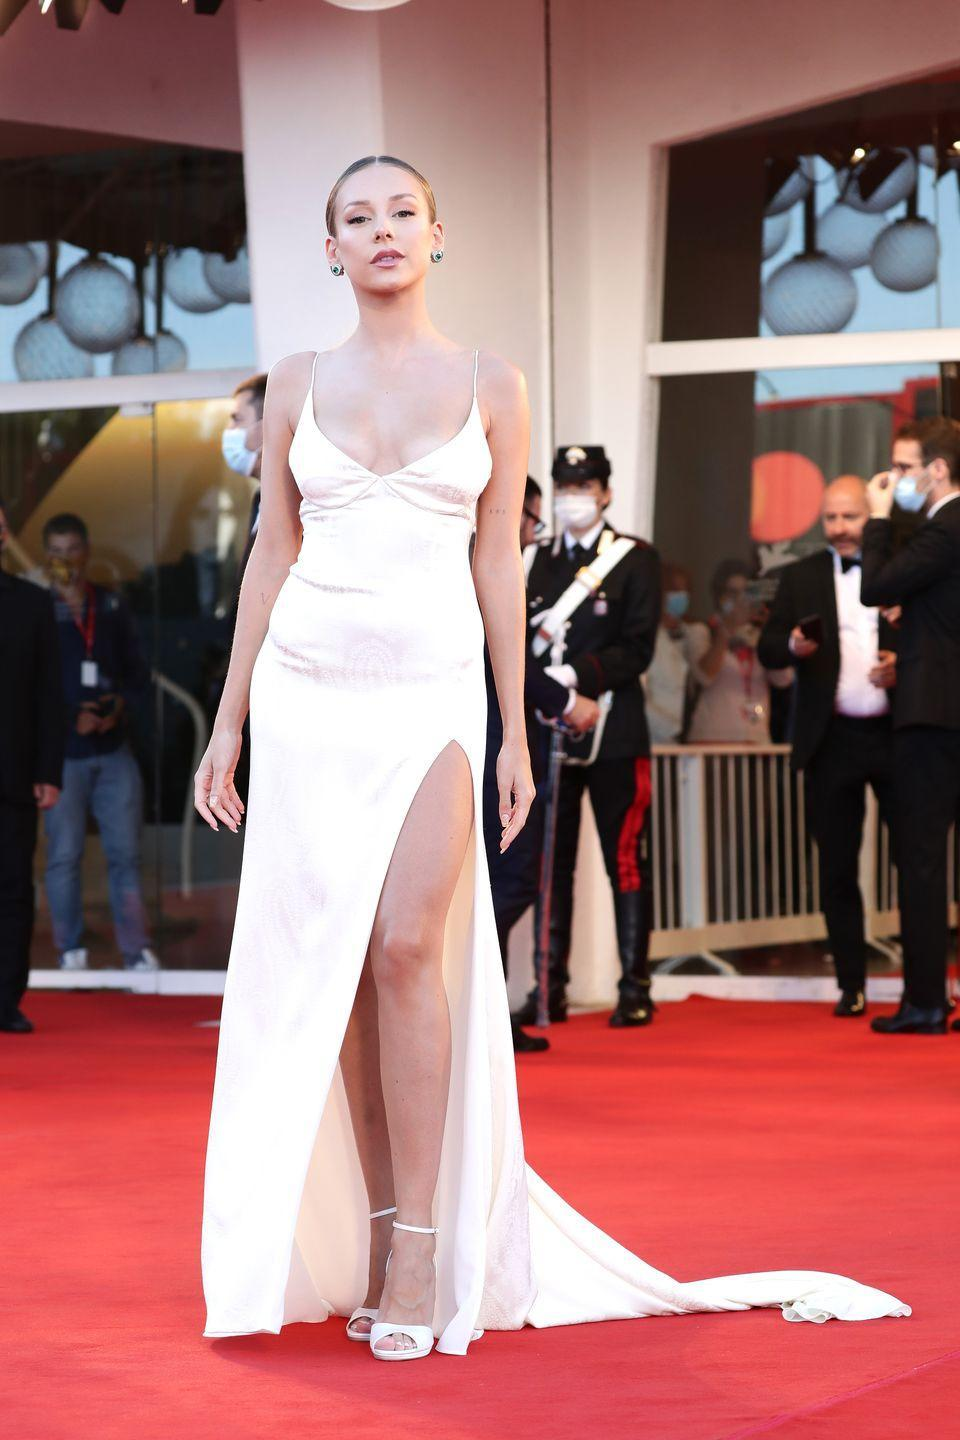 <p>Ester Expósito wears a white slipdress with a high slit.</p>